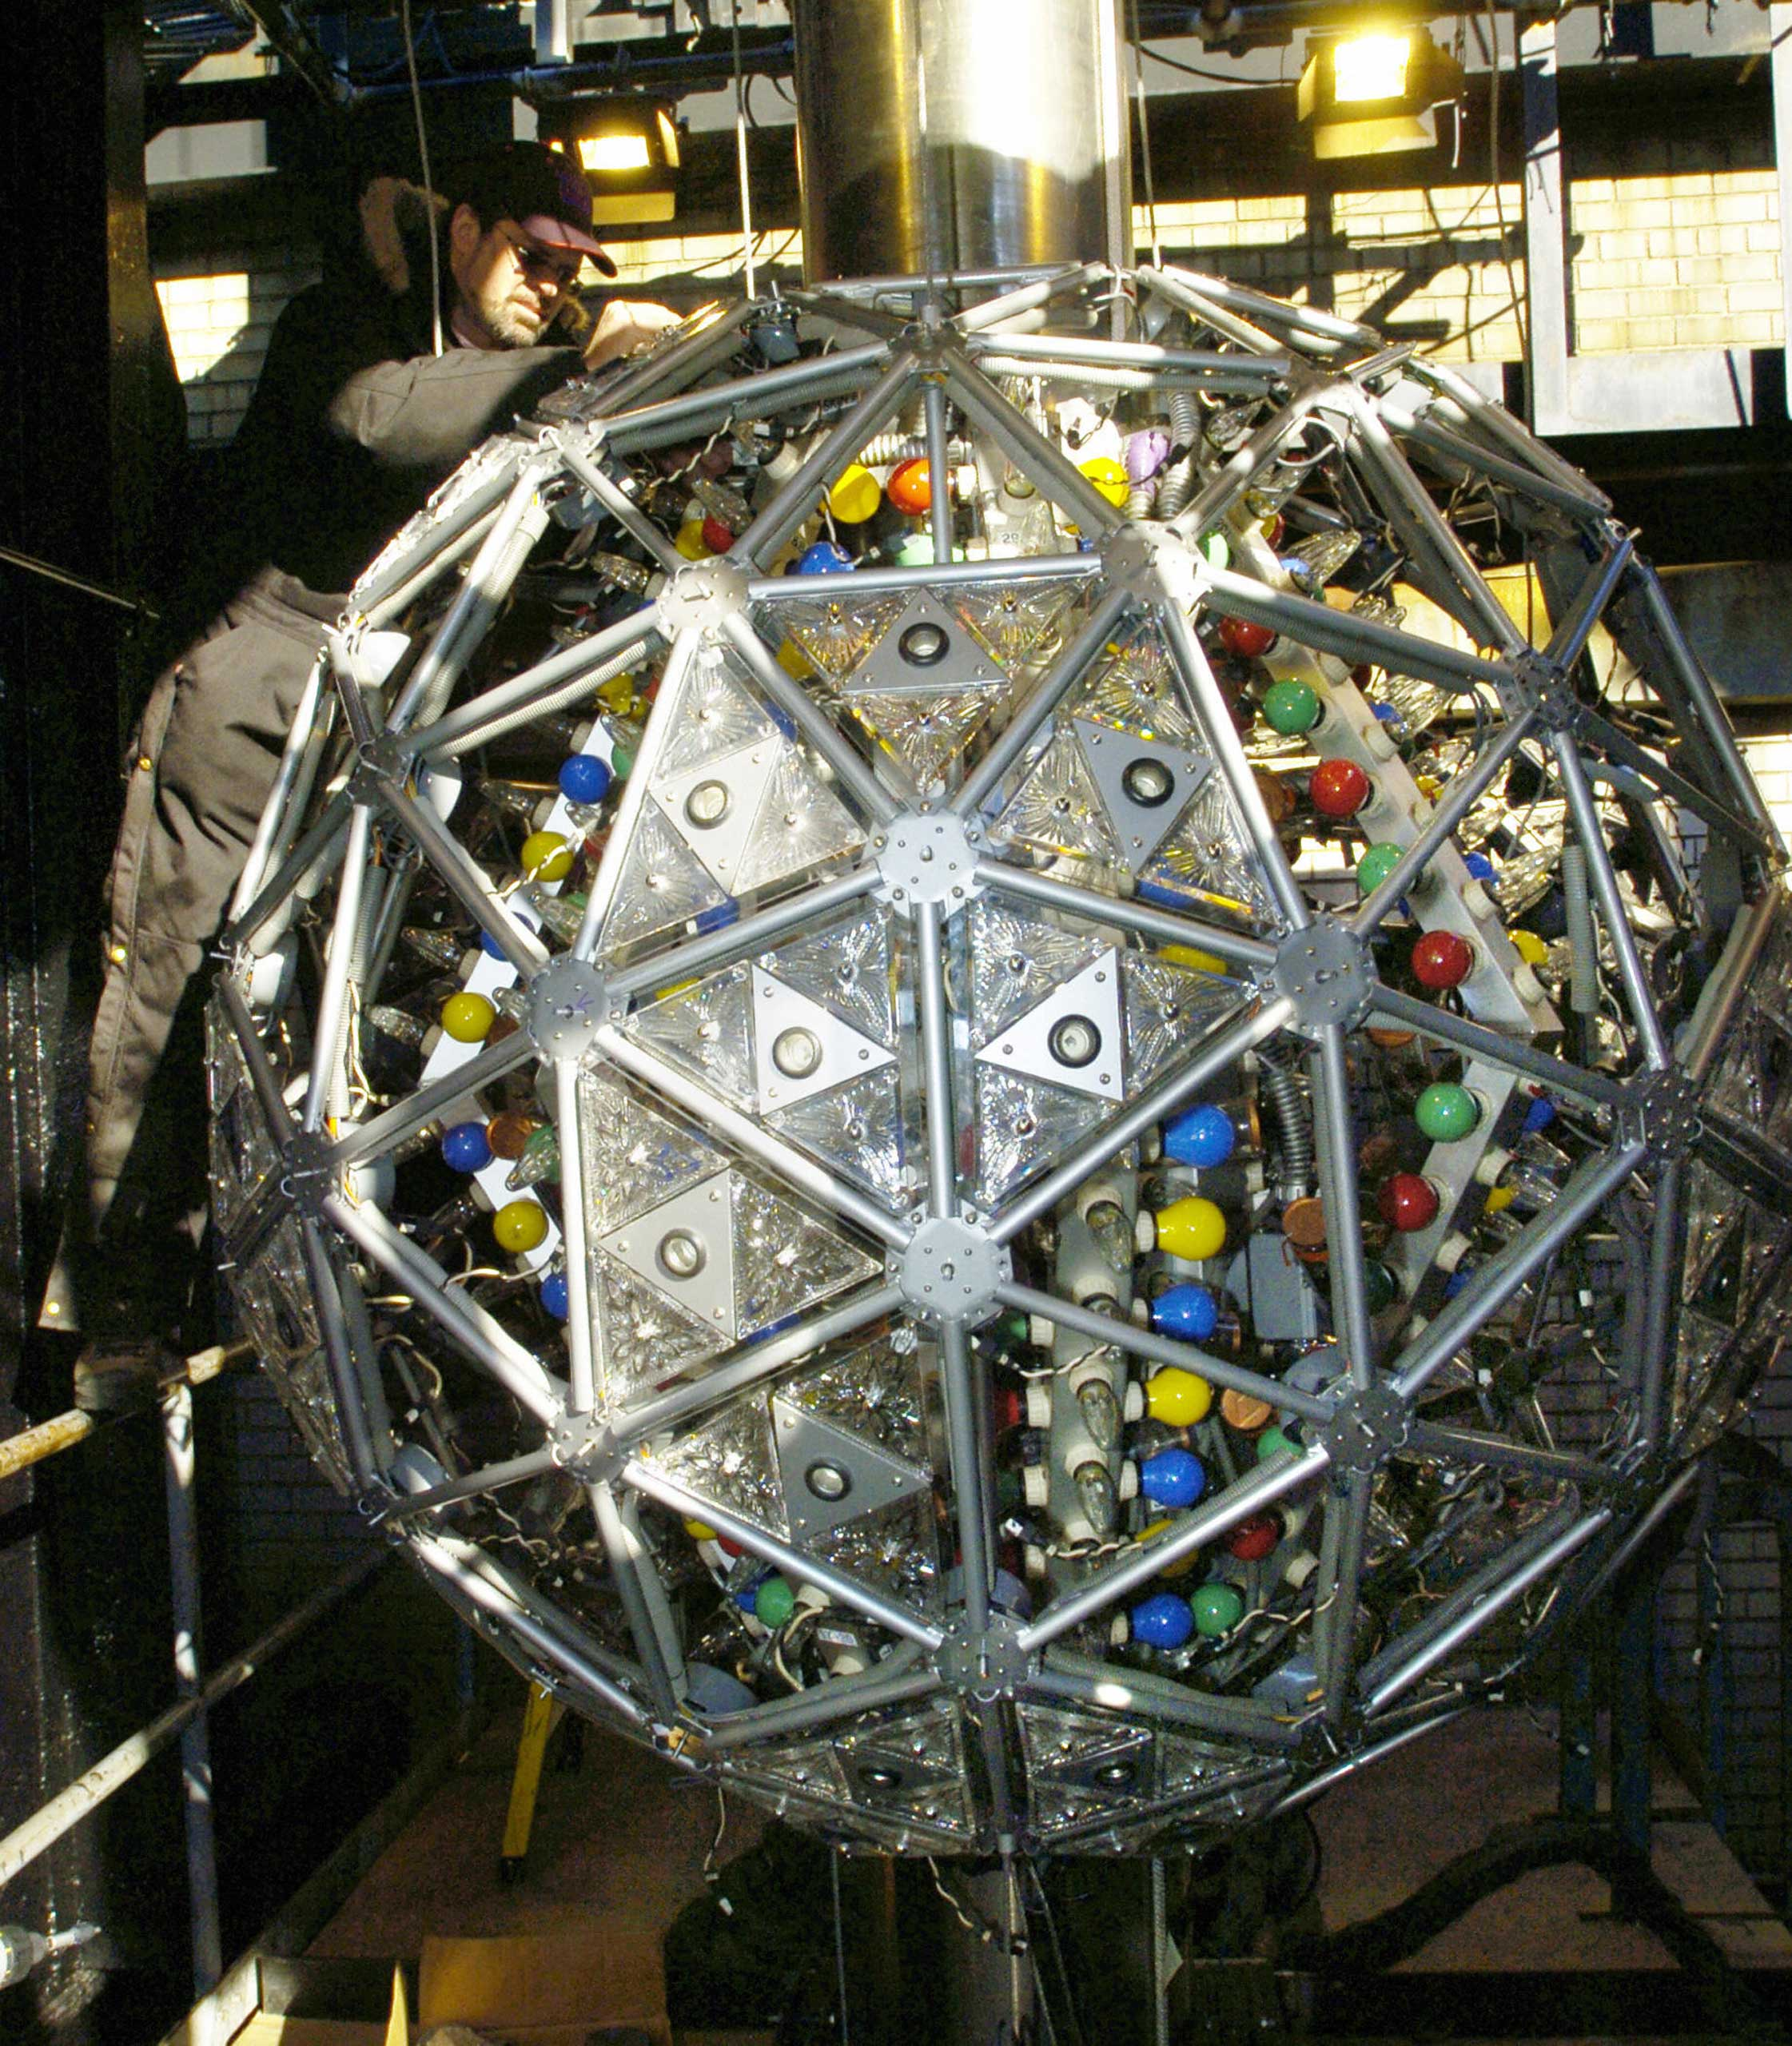 A workman installs one of 72 new Waterford Crystal triangles, featuring the  Hope for Fellowship  design, on the exterior of the Times Square New Year's Eve Ball in New York City on Dec. 28, 2005.